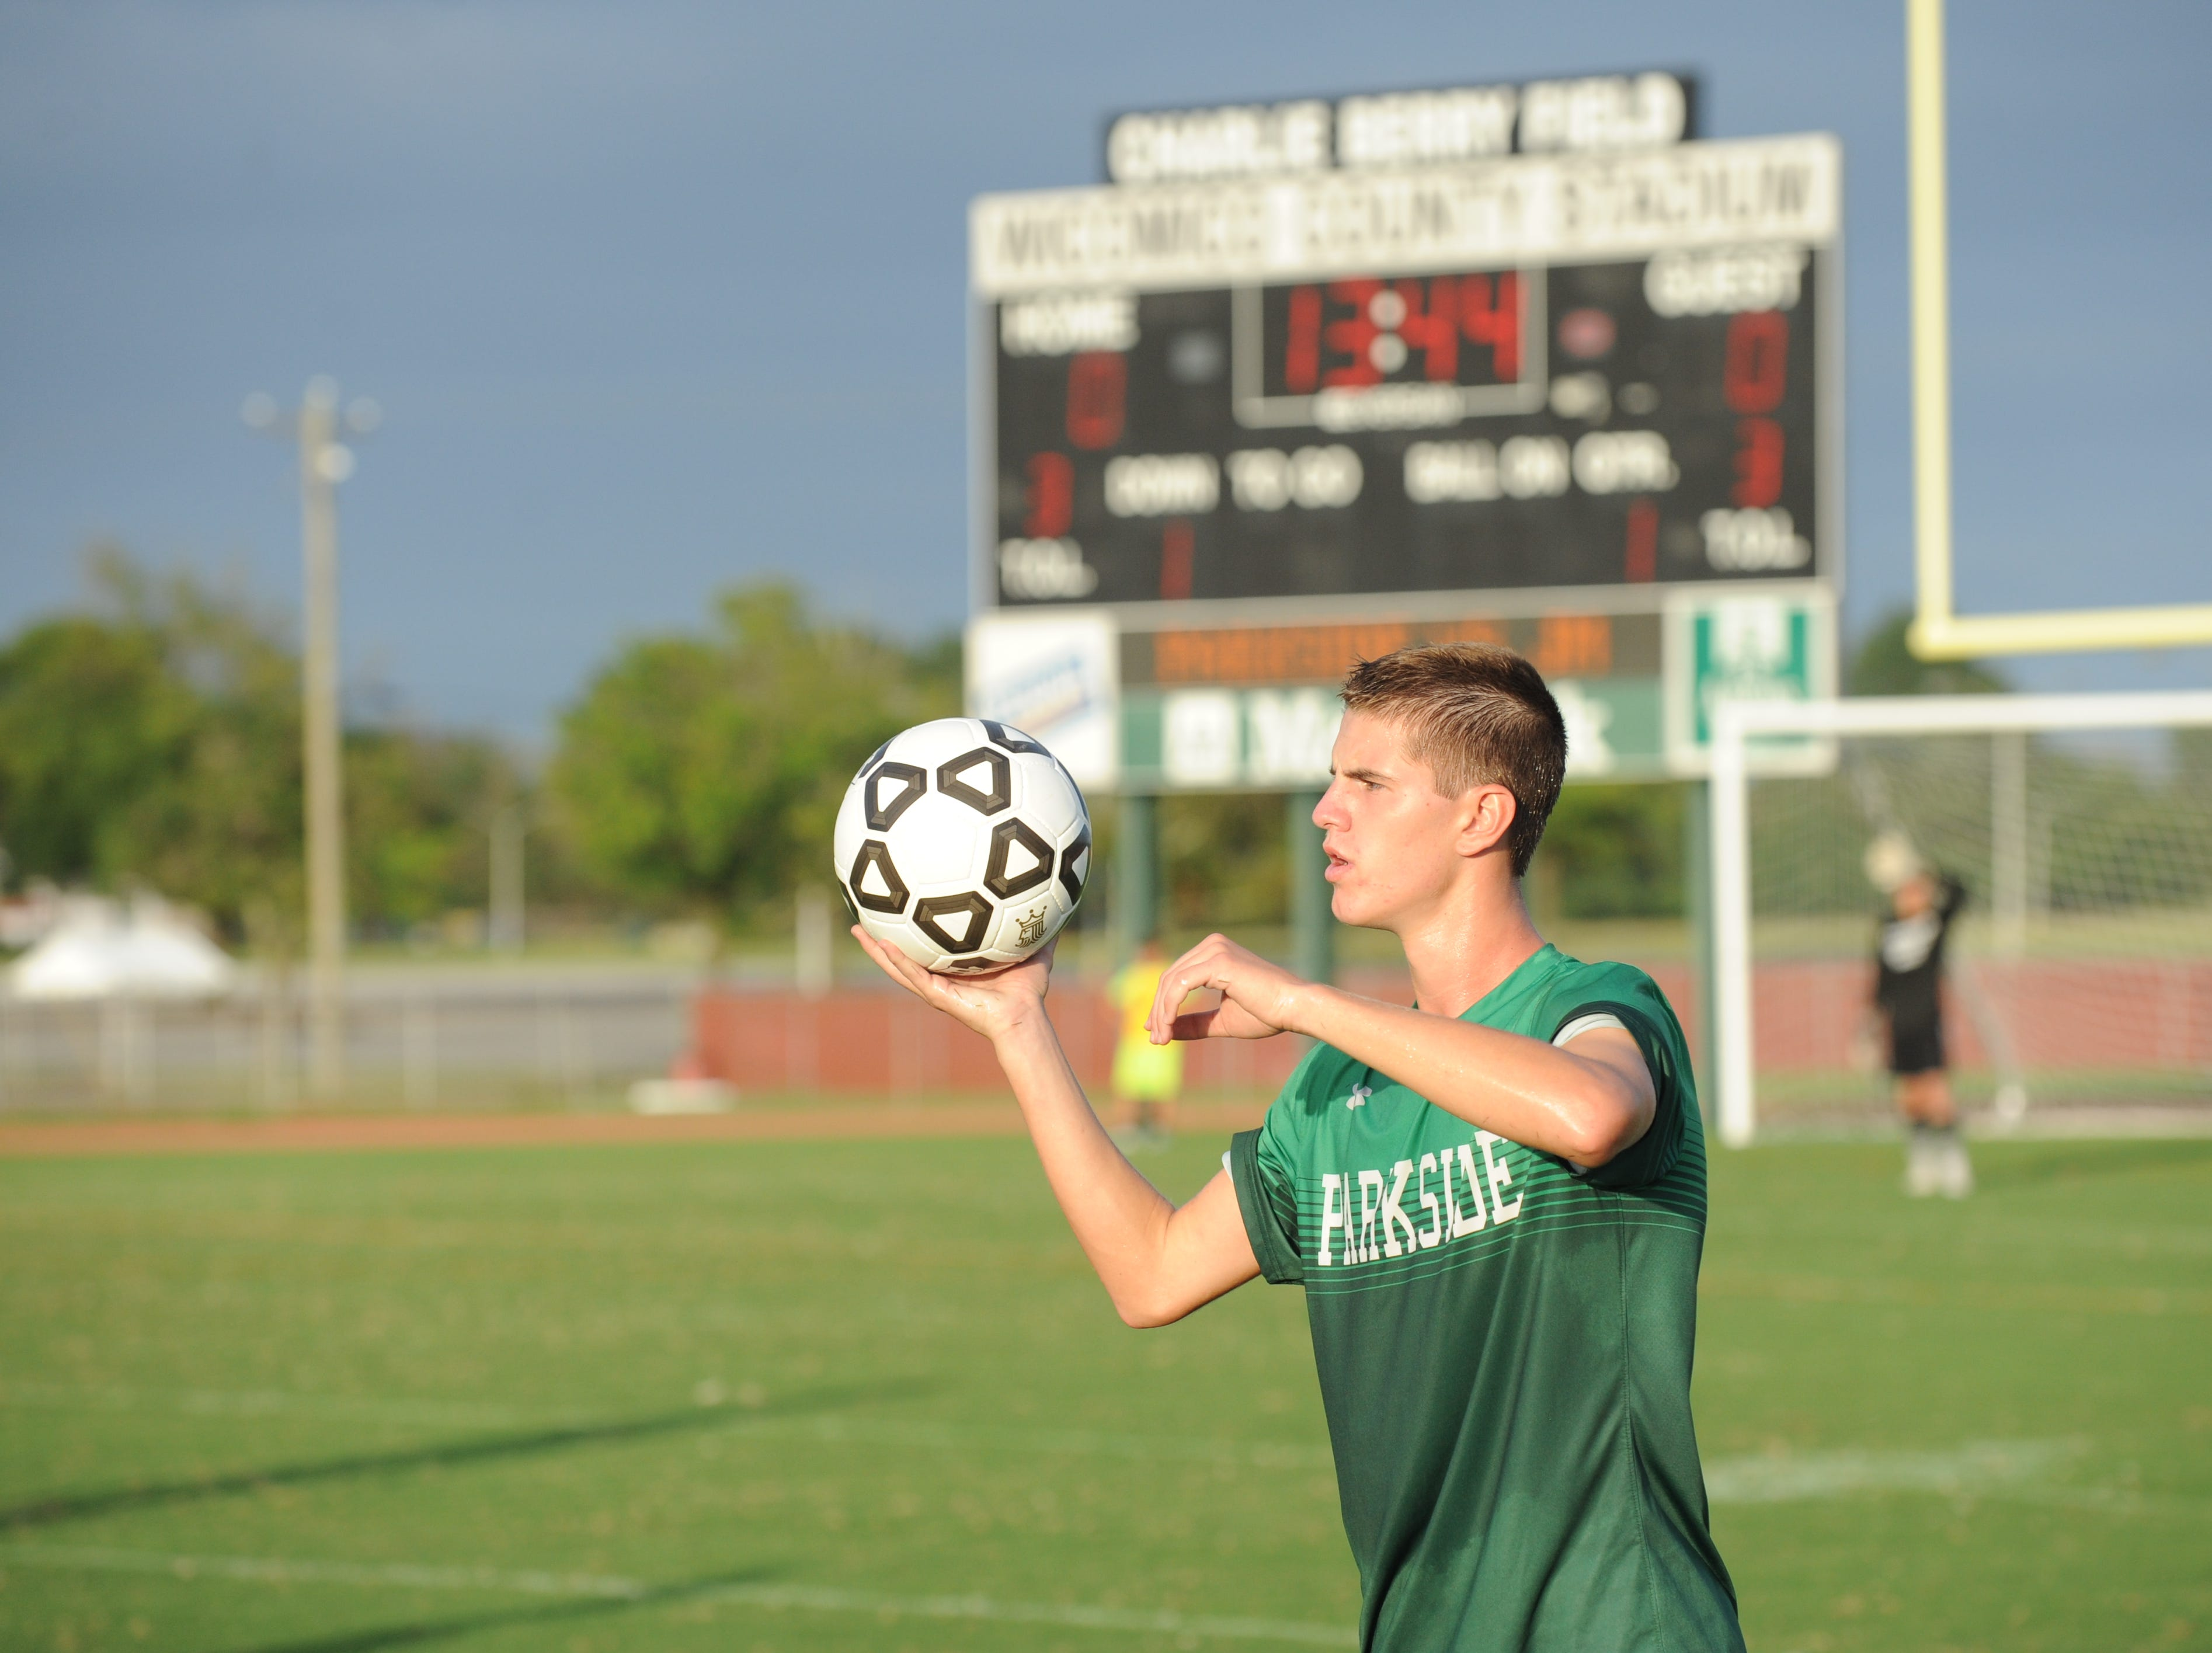 Parkside defender Stevie Mancha goes for a throw-in during the Rams' boys soccer game against Bennett Monday night at County Stadium.